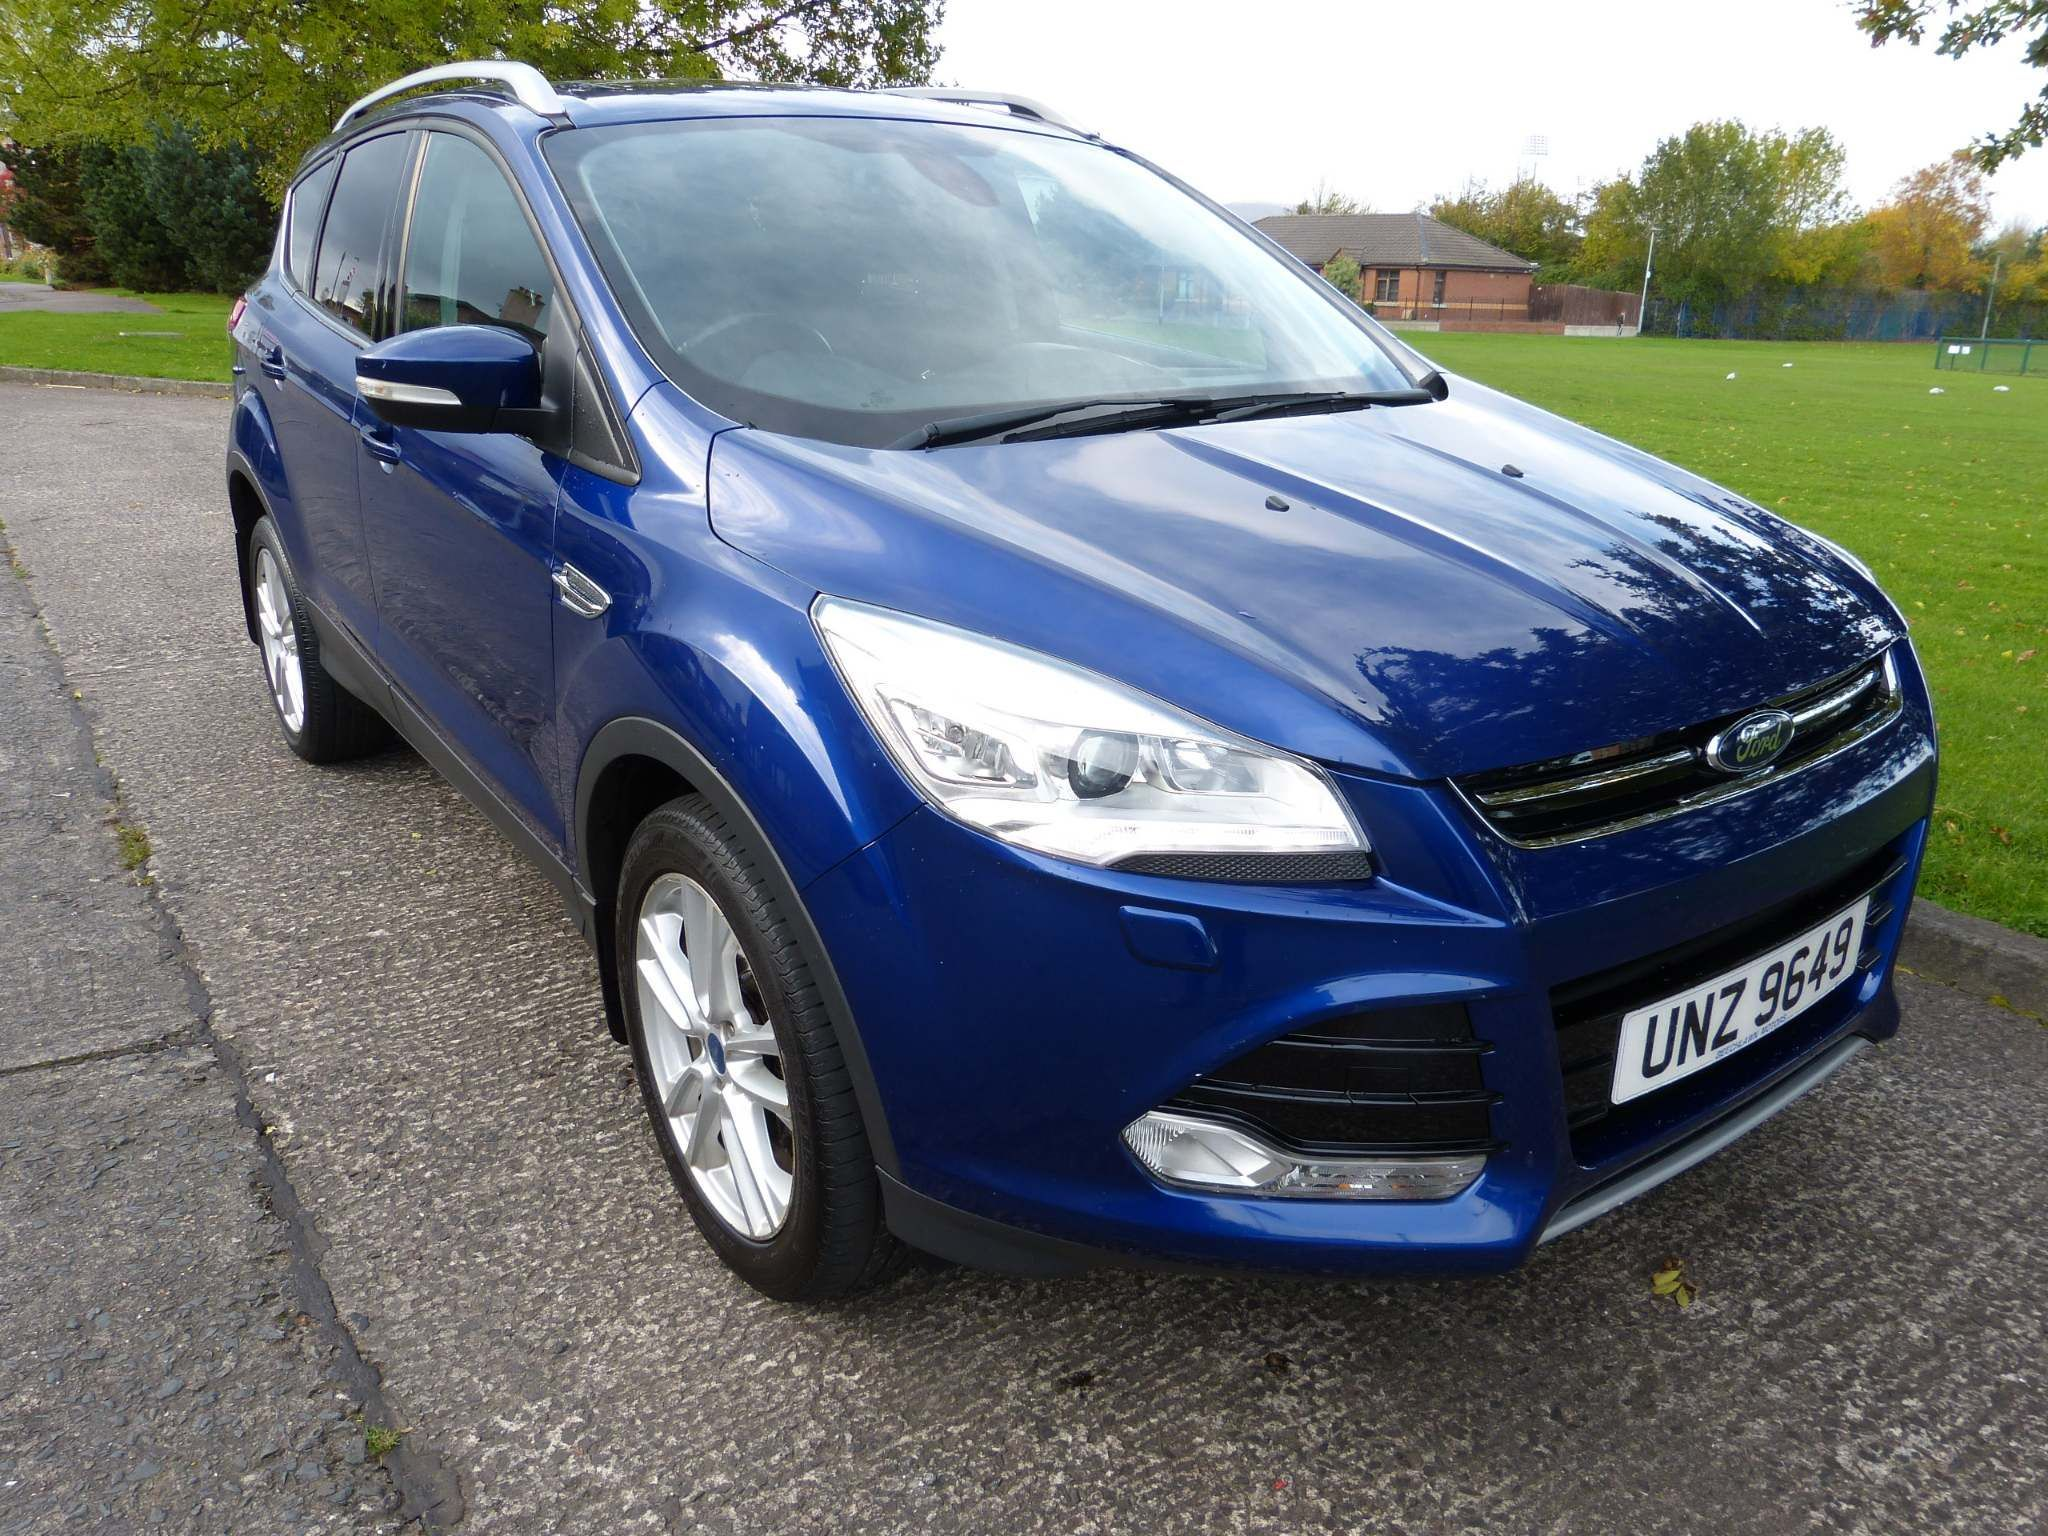 2015 FORD Kuga 2.0 TDCi Titanium X Diesel Manual full leather – Beechlawn Motors Belfast